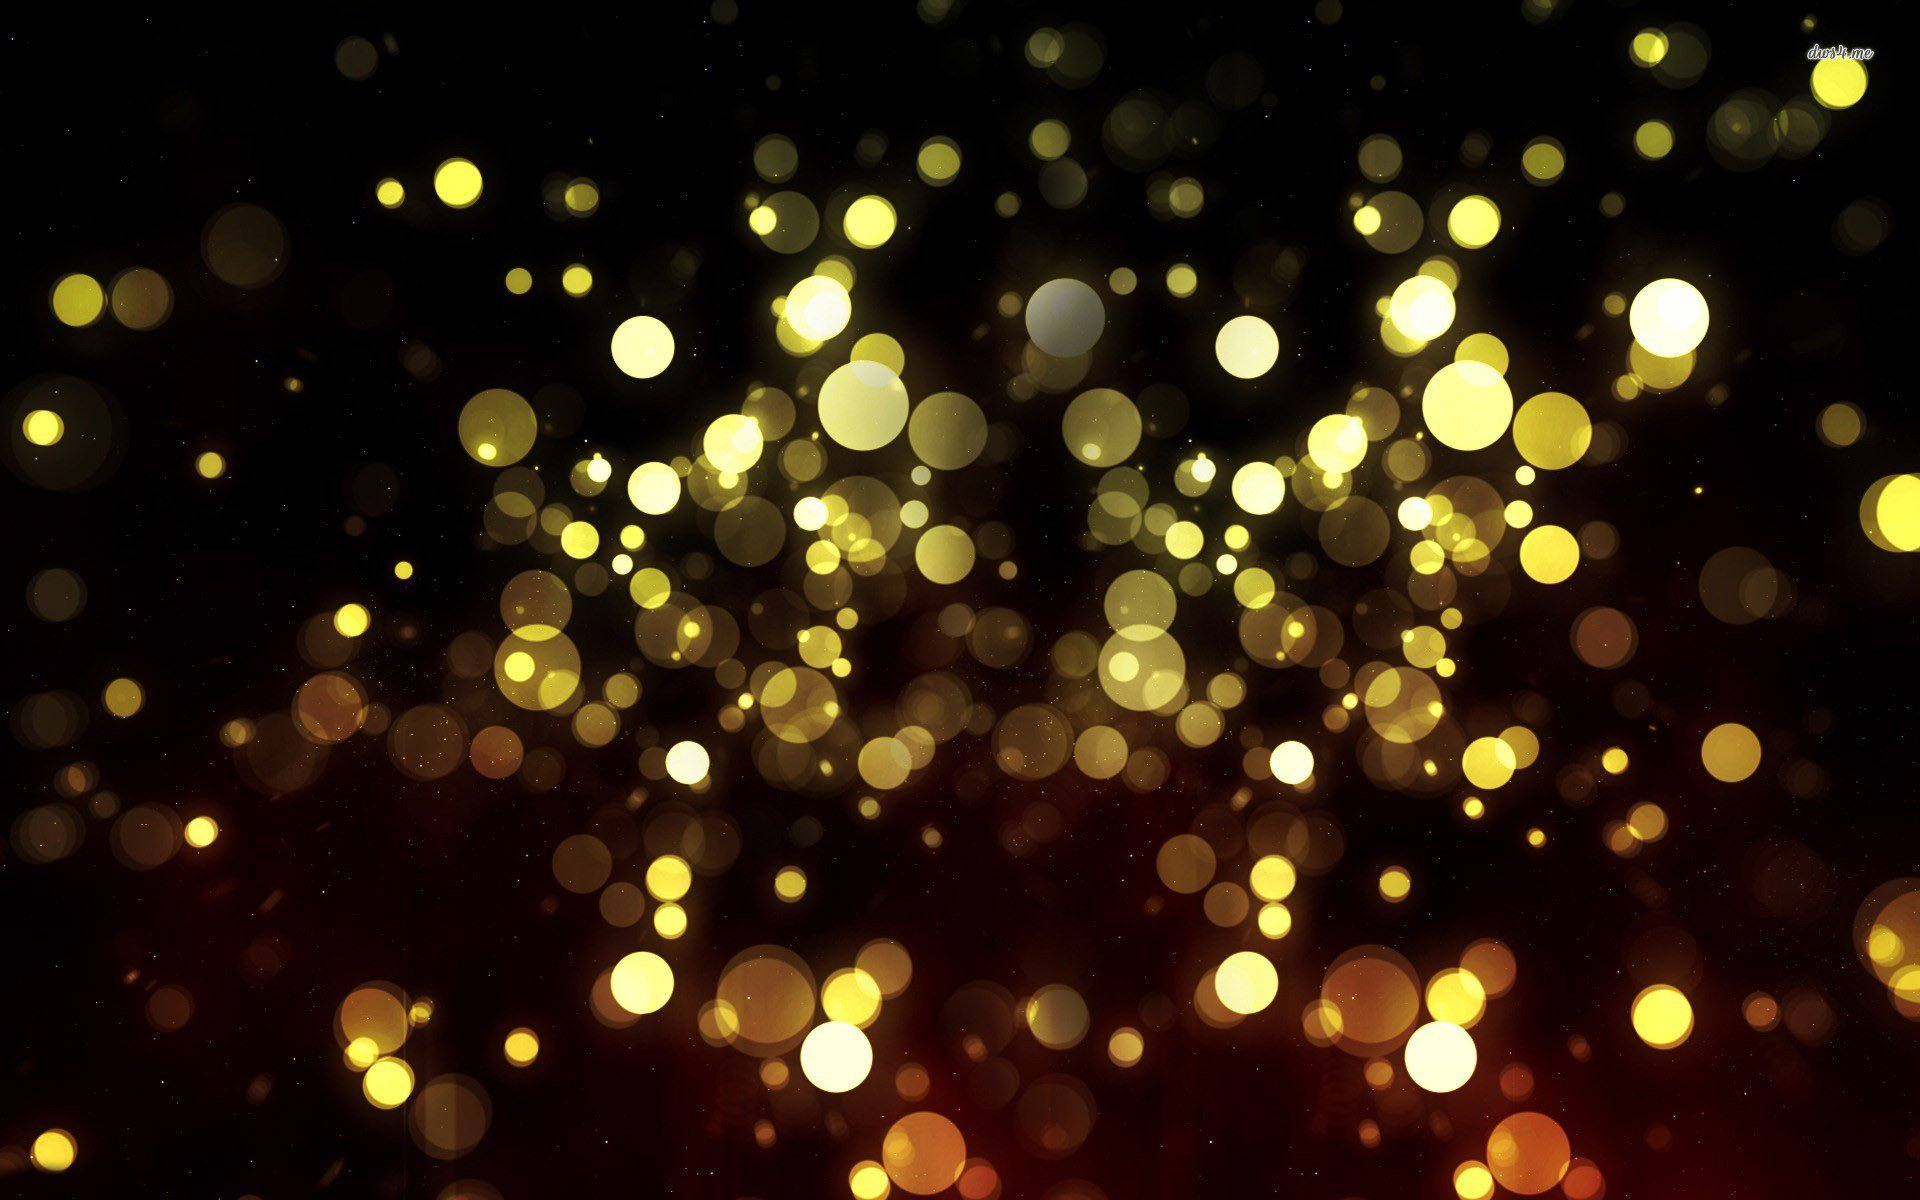 105 Bokeh HD Wallpapers | Background Images - Wallpaper Abyss